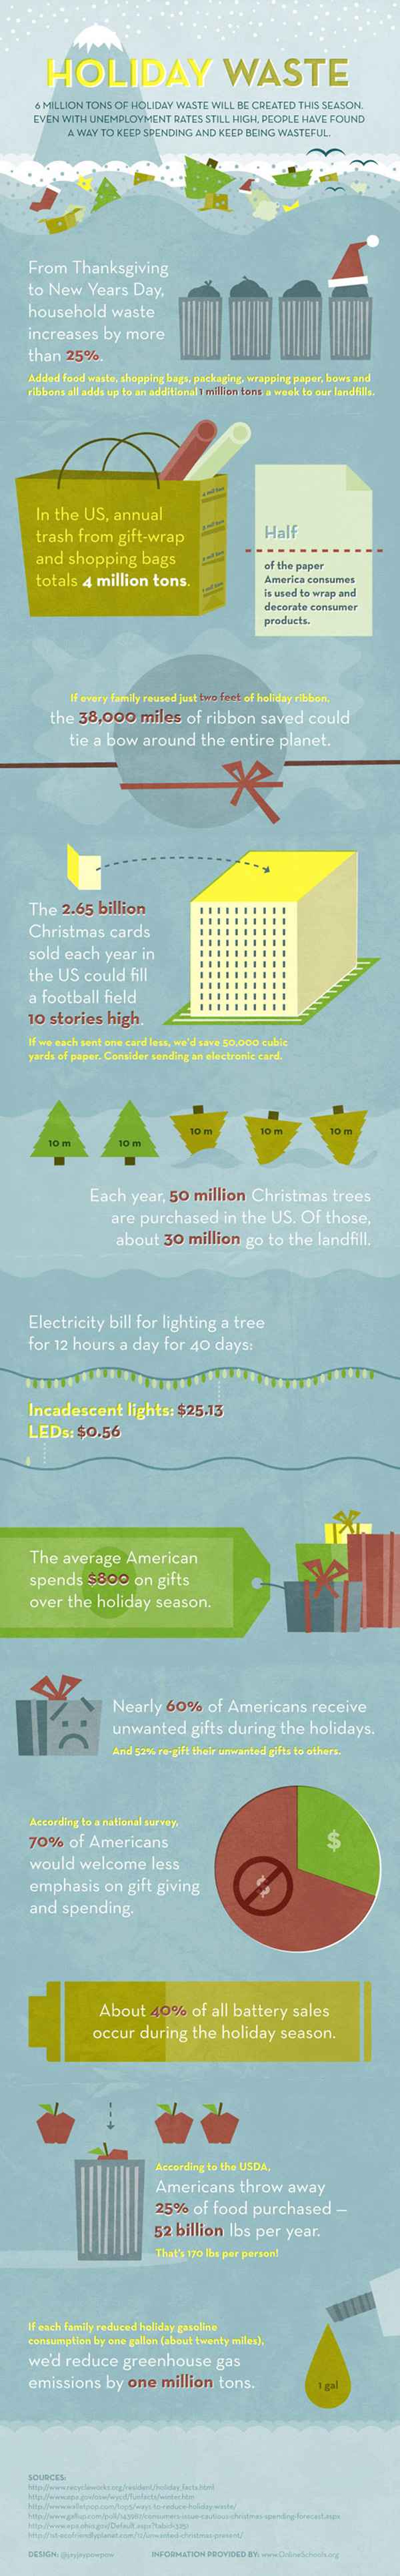 holiday-waste-infographic600